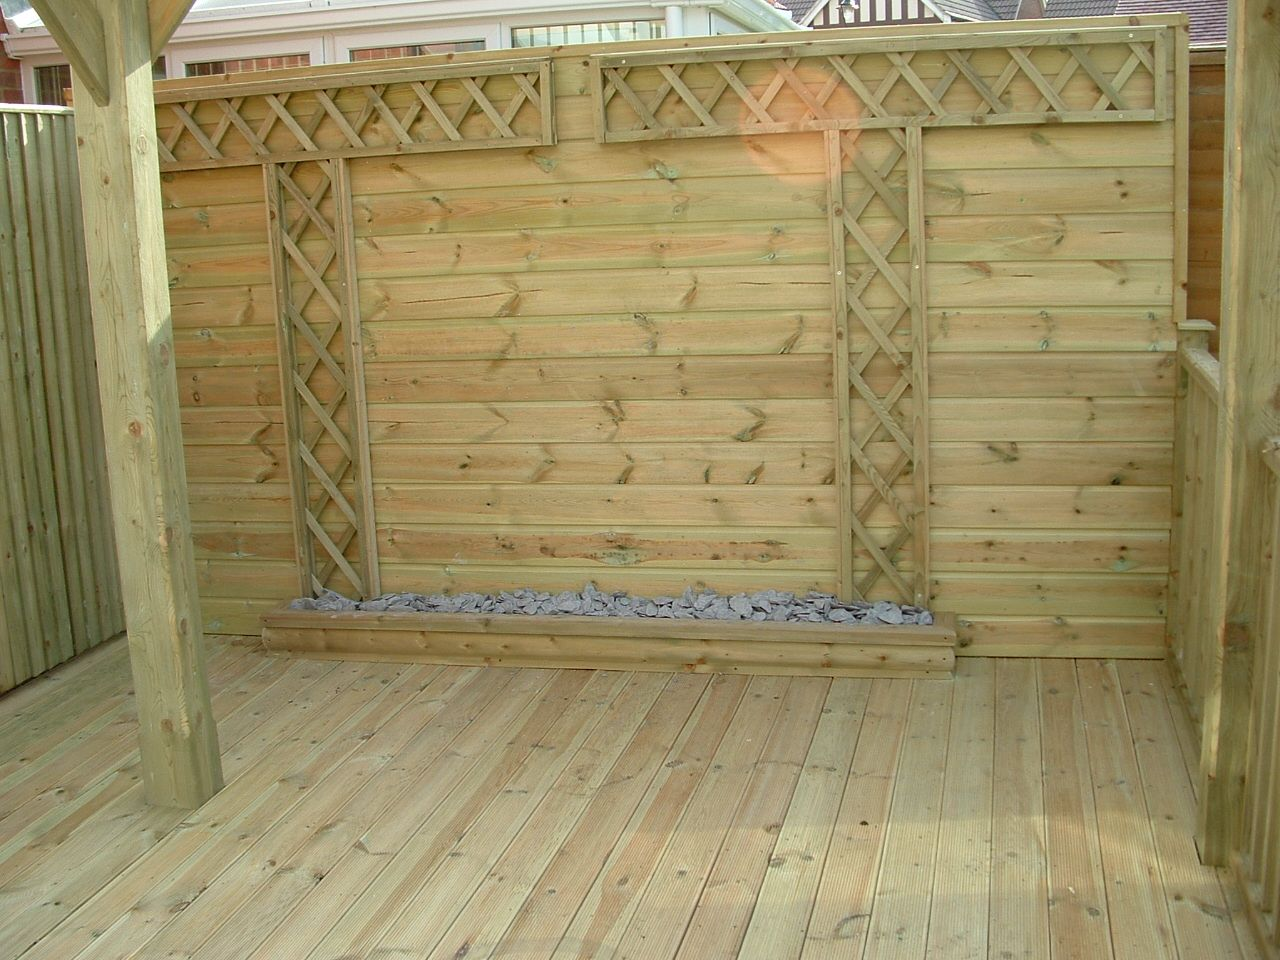 haymac deck with planter and trellis.JPG